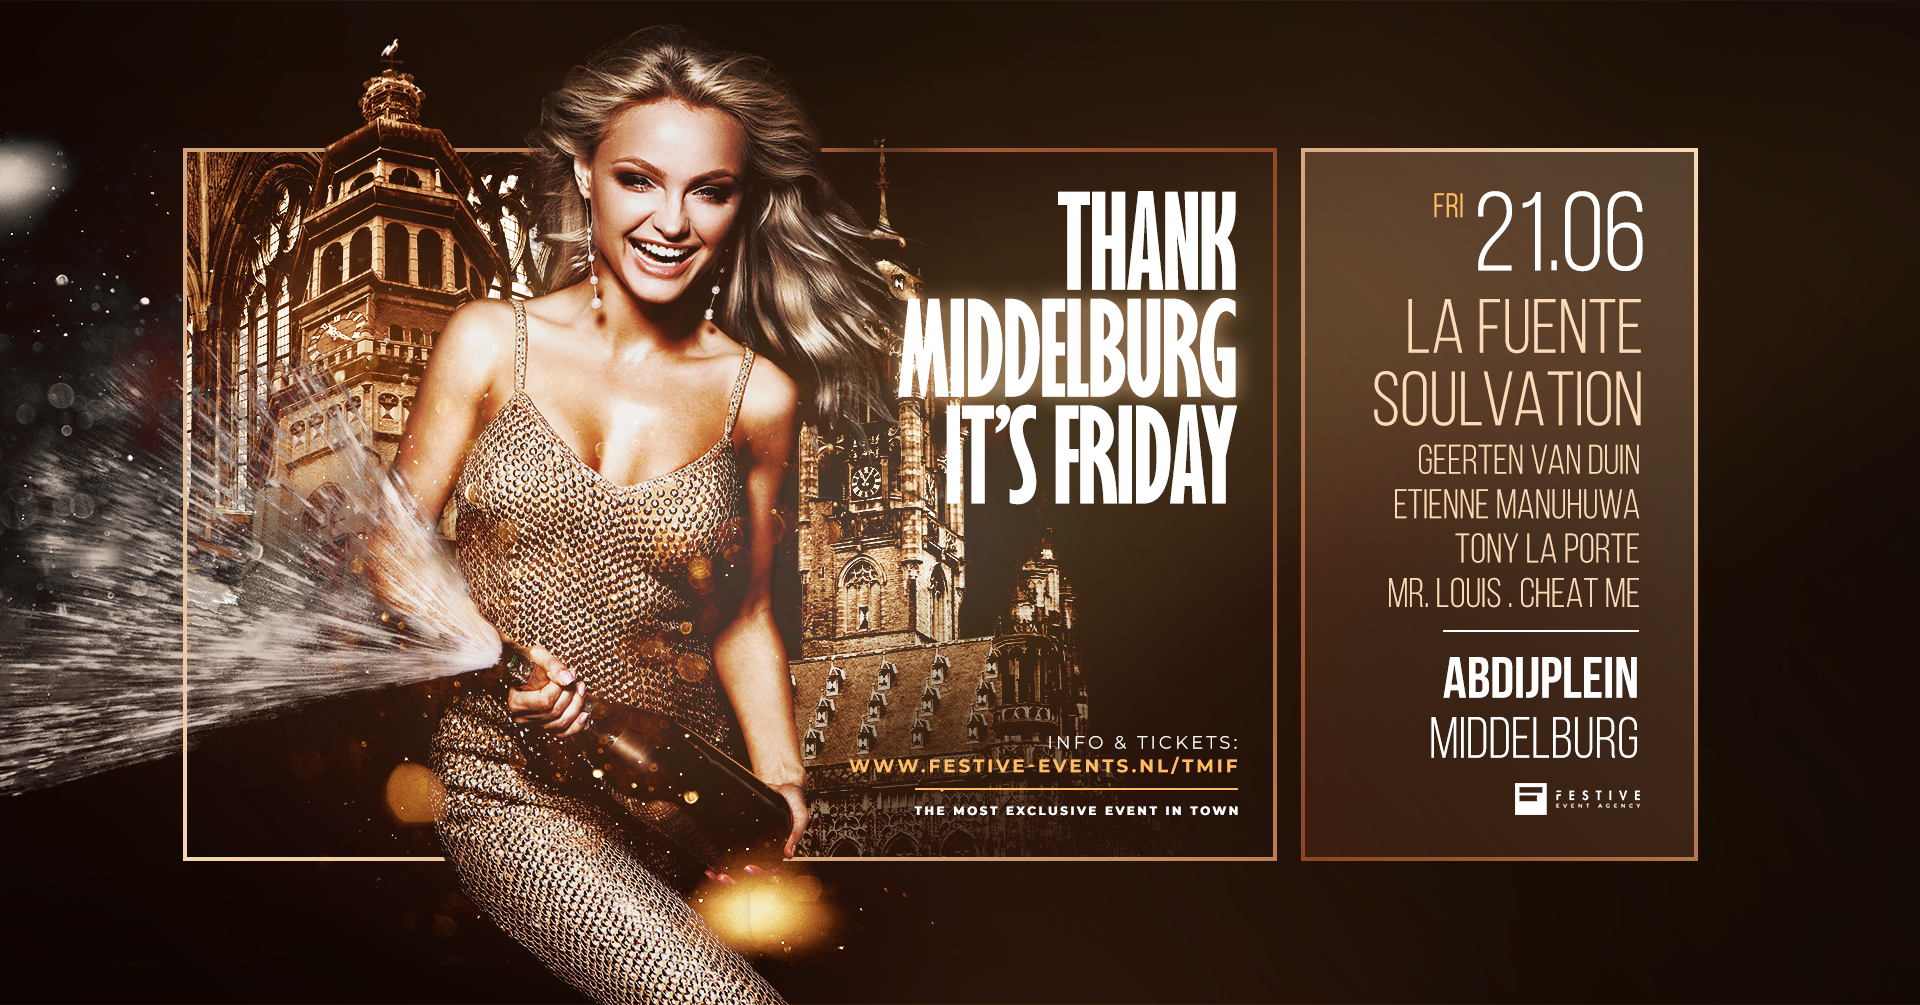 Thank Middelburg It's Friday